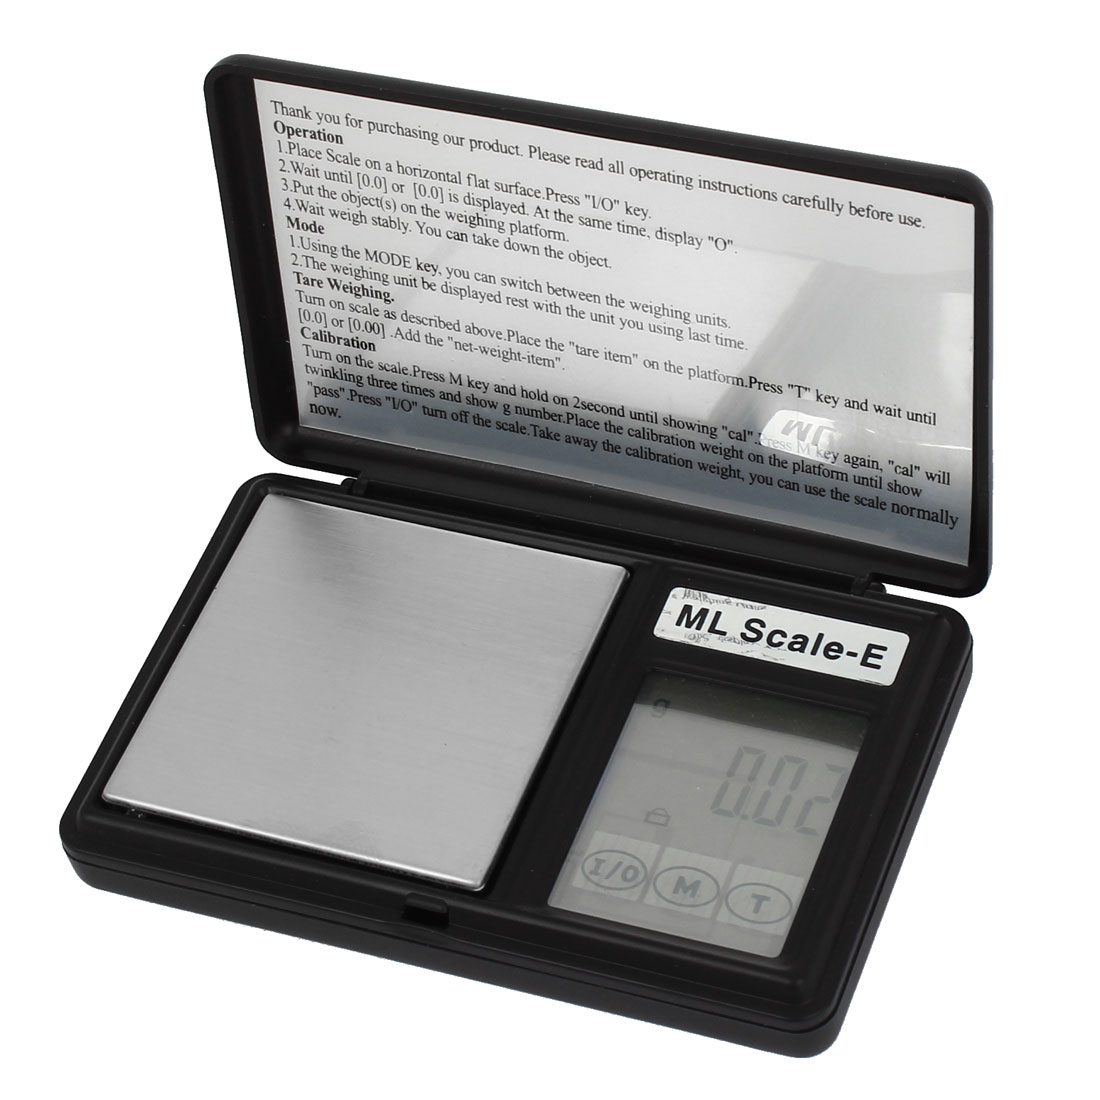 Flip Open 0.01g x 100g Jewelry Weight Balance Digital Pocket Scale Black